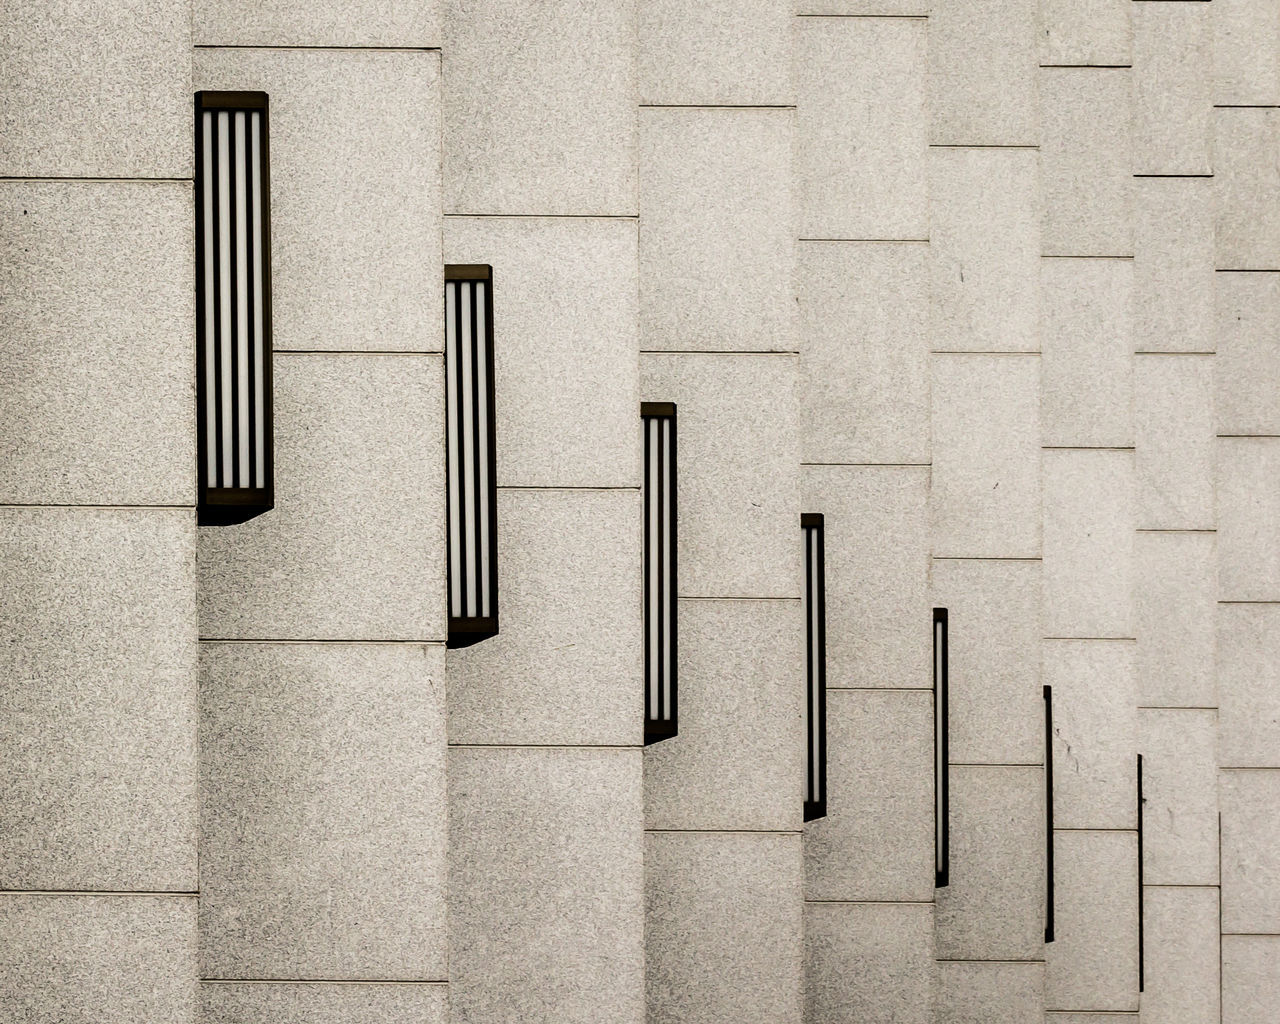 Architecture Backgrounds Building Building Exterior Close-up Day Minimal Minimalist Architecture No People Outdoors Pattern Strength Urban Urban Geometry